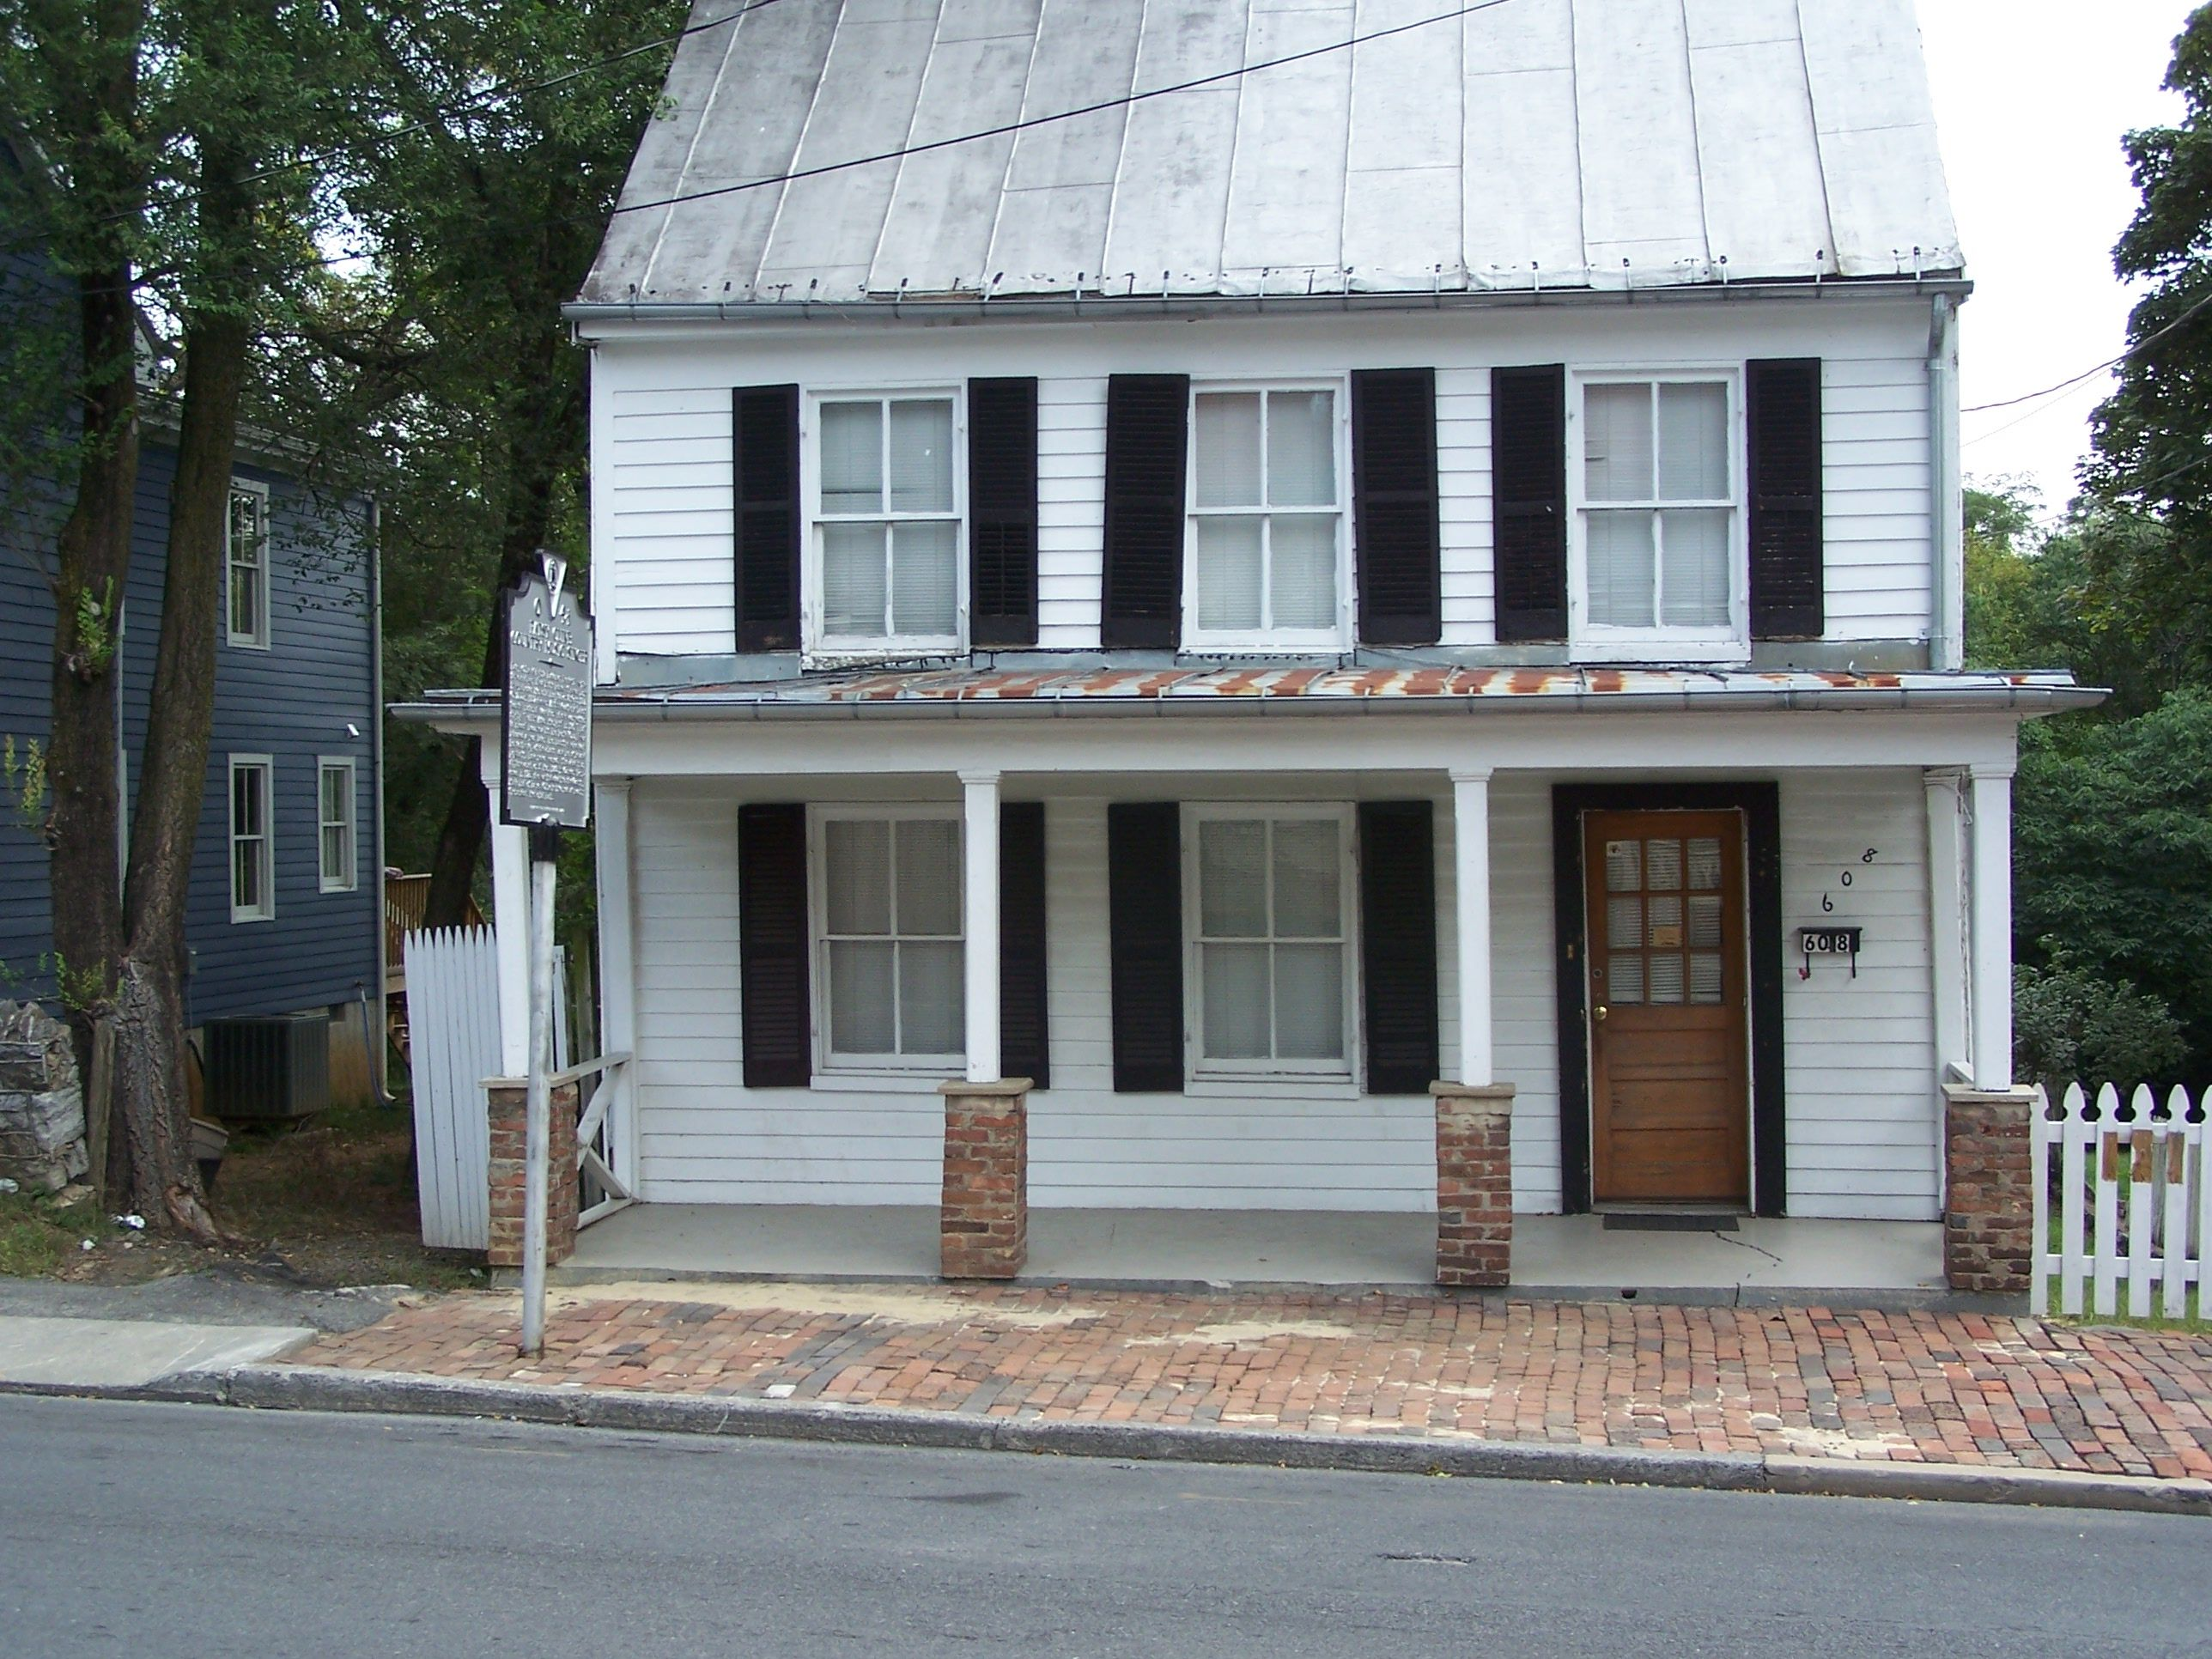 Home Where Patsy Cline Grew Up 2010 House Was Turned Into A Museum Patsy Cline I Fall To Pieces Winchester Virginia